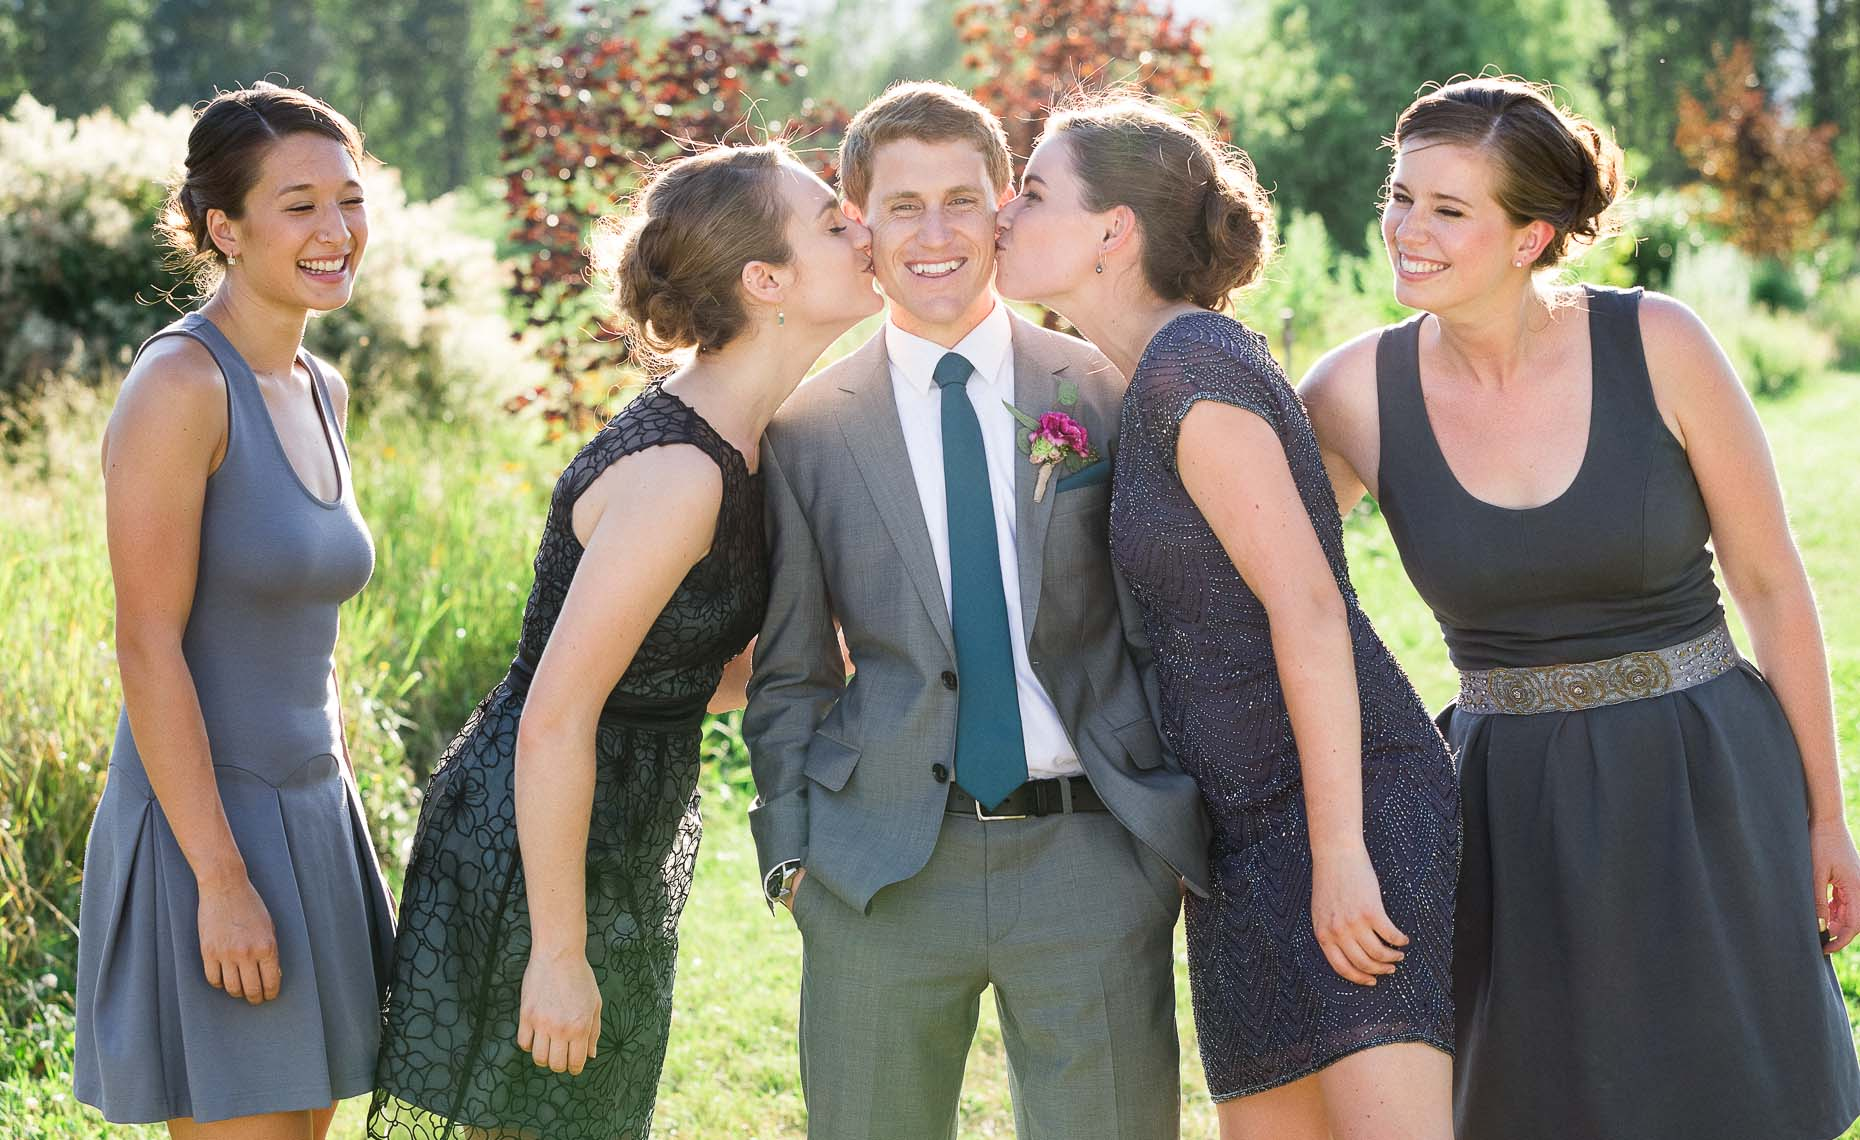 Groom and bridesmaids at rustic vintage style Whistler wedding.